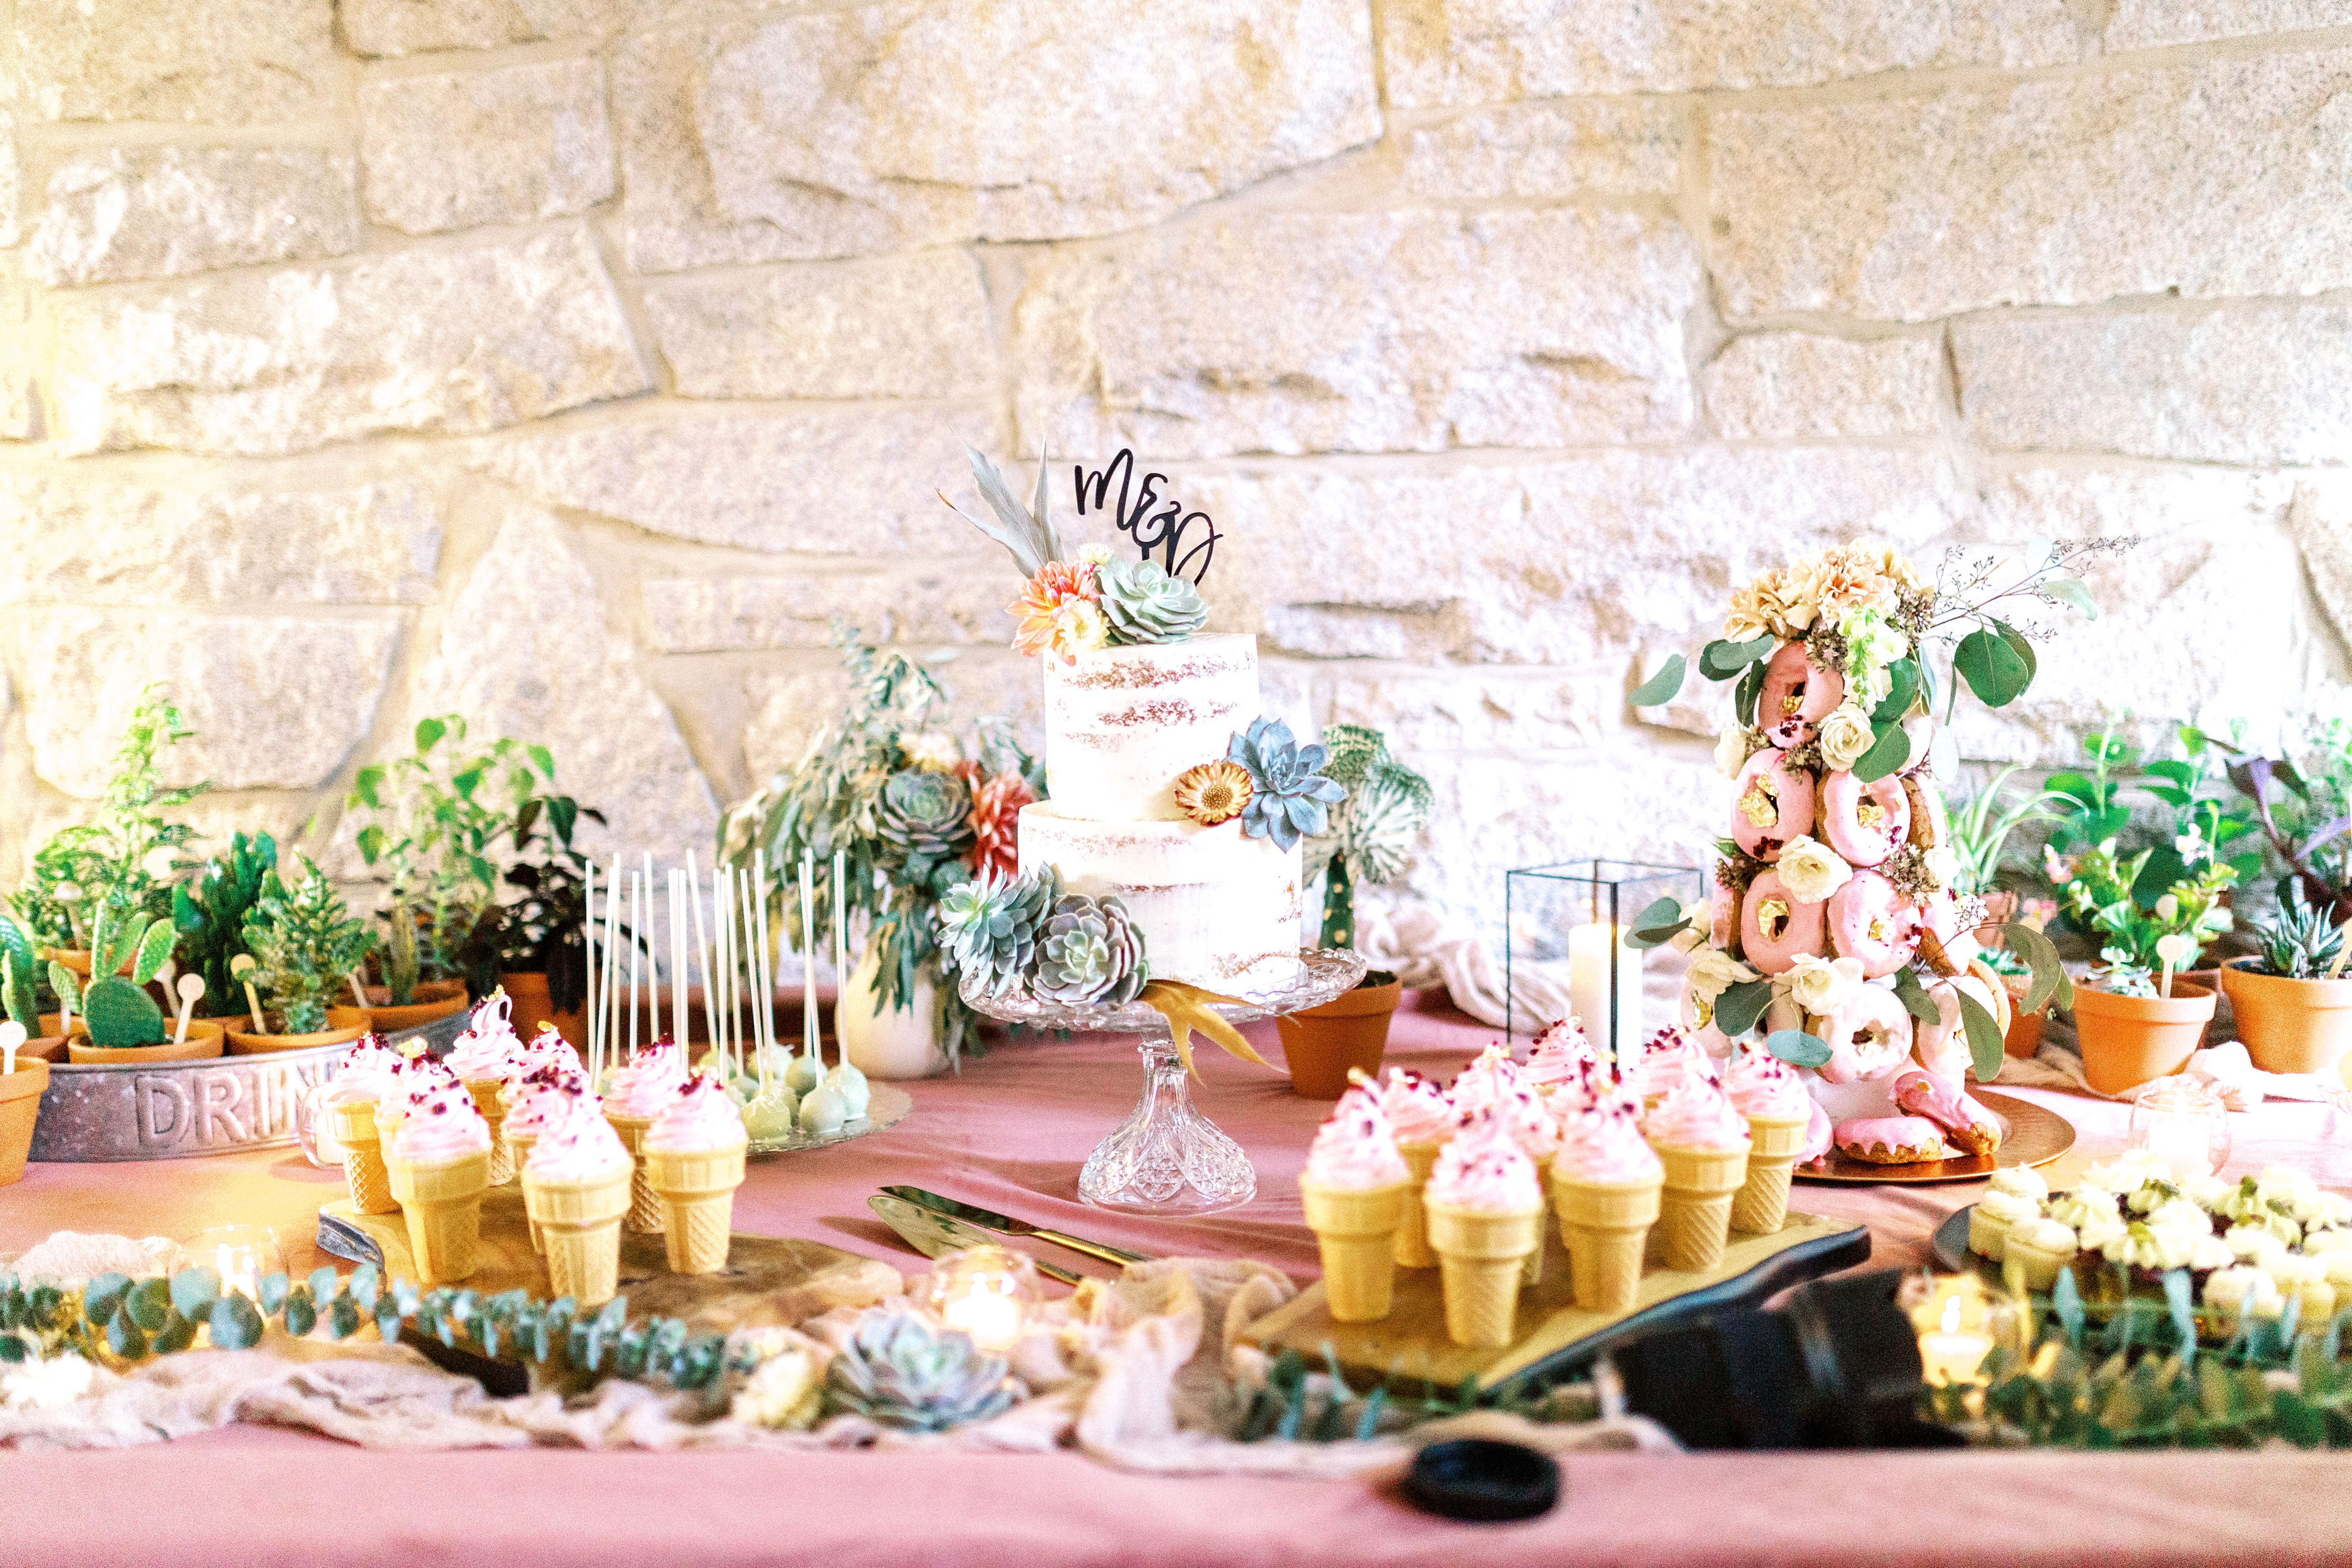 Mariage fusion mexicaine